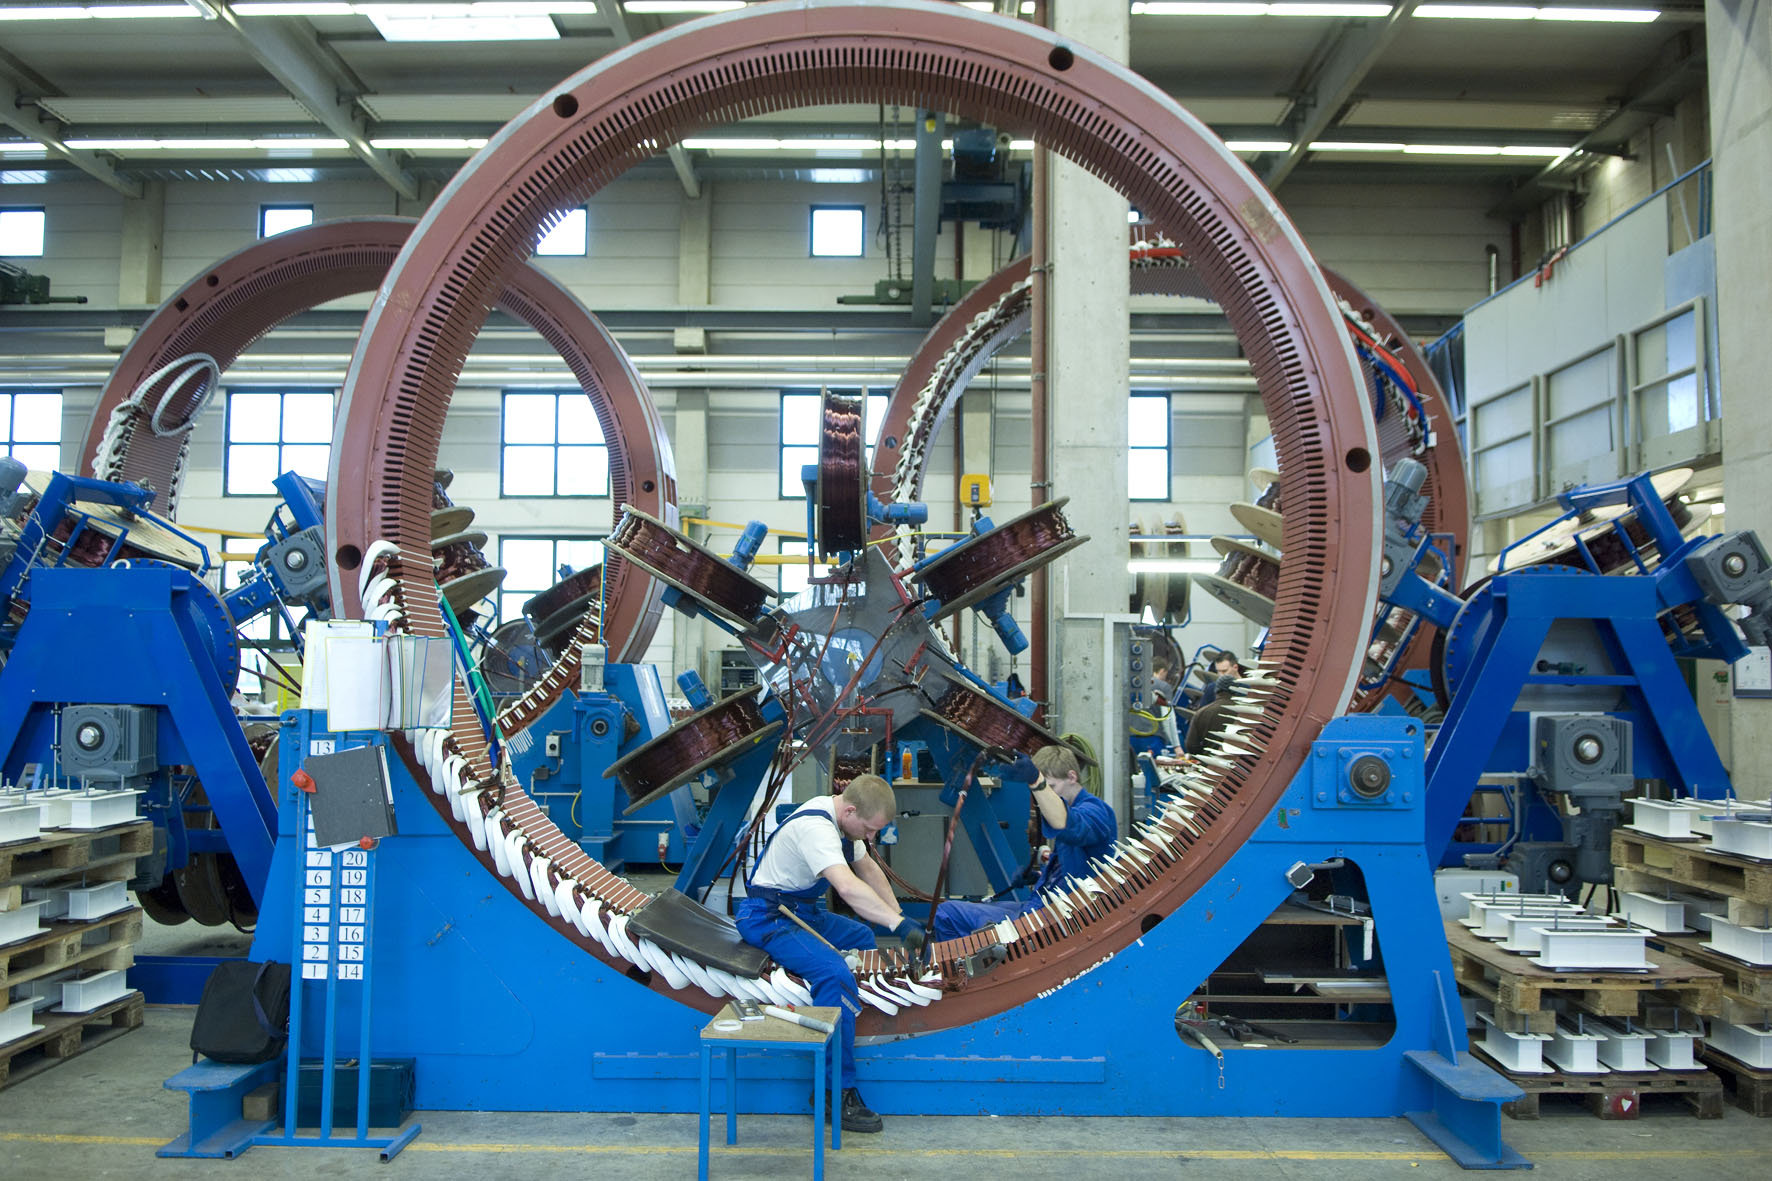 Circular economy project set to ensure clean energy solutions don't increase landfill waste